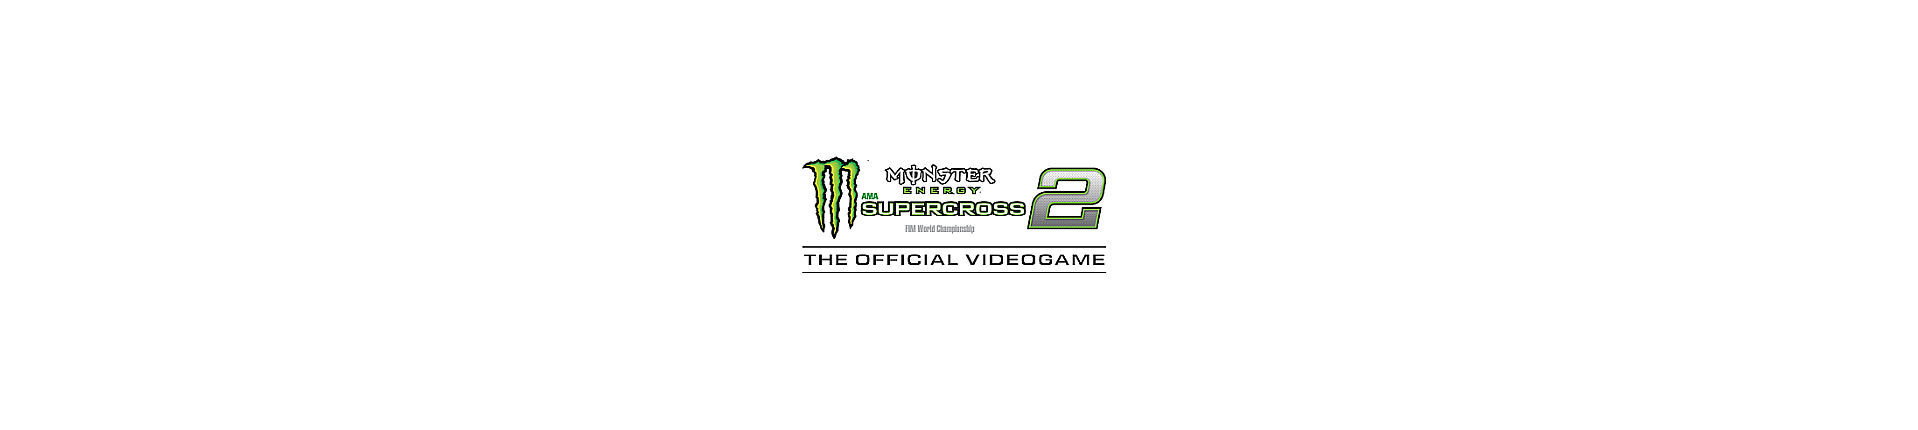 <a href='https://www.mightygamesmag.de/all-game-list/monster-energy-supercross-the-official-videogame-2/'>Zum Spiel</a>